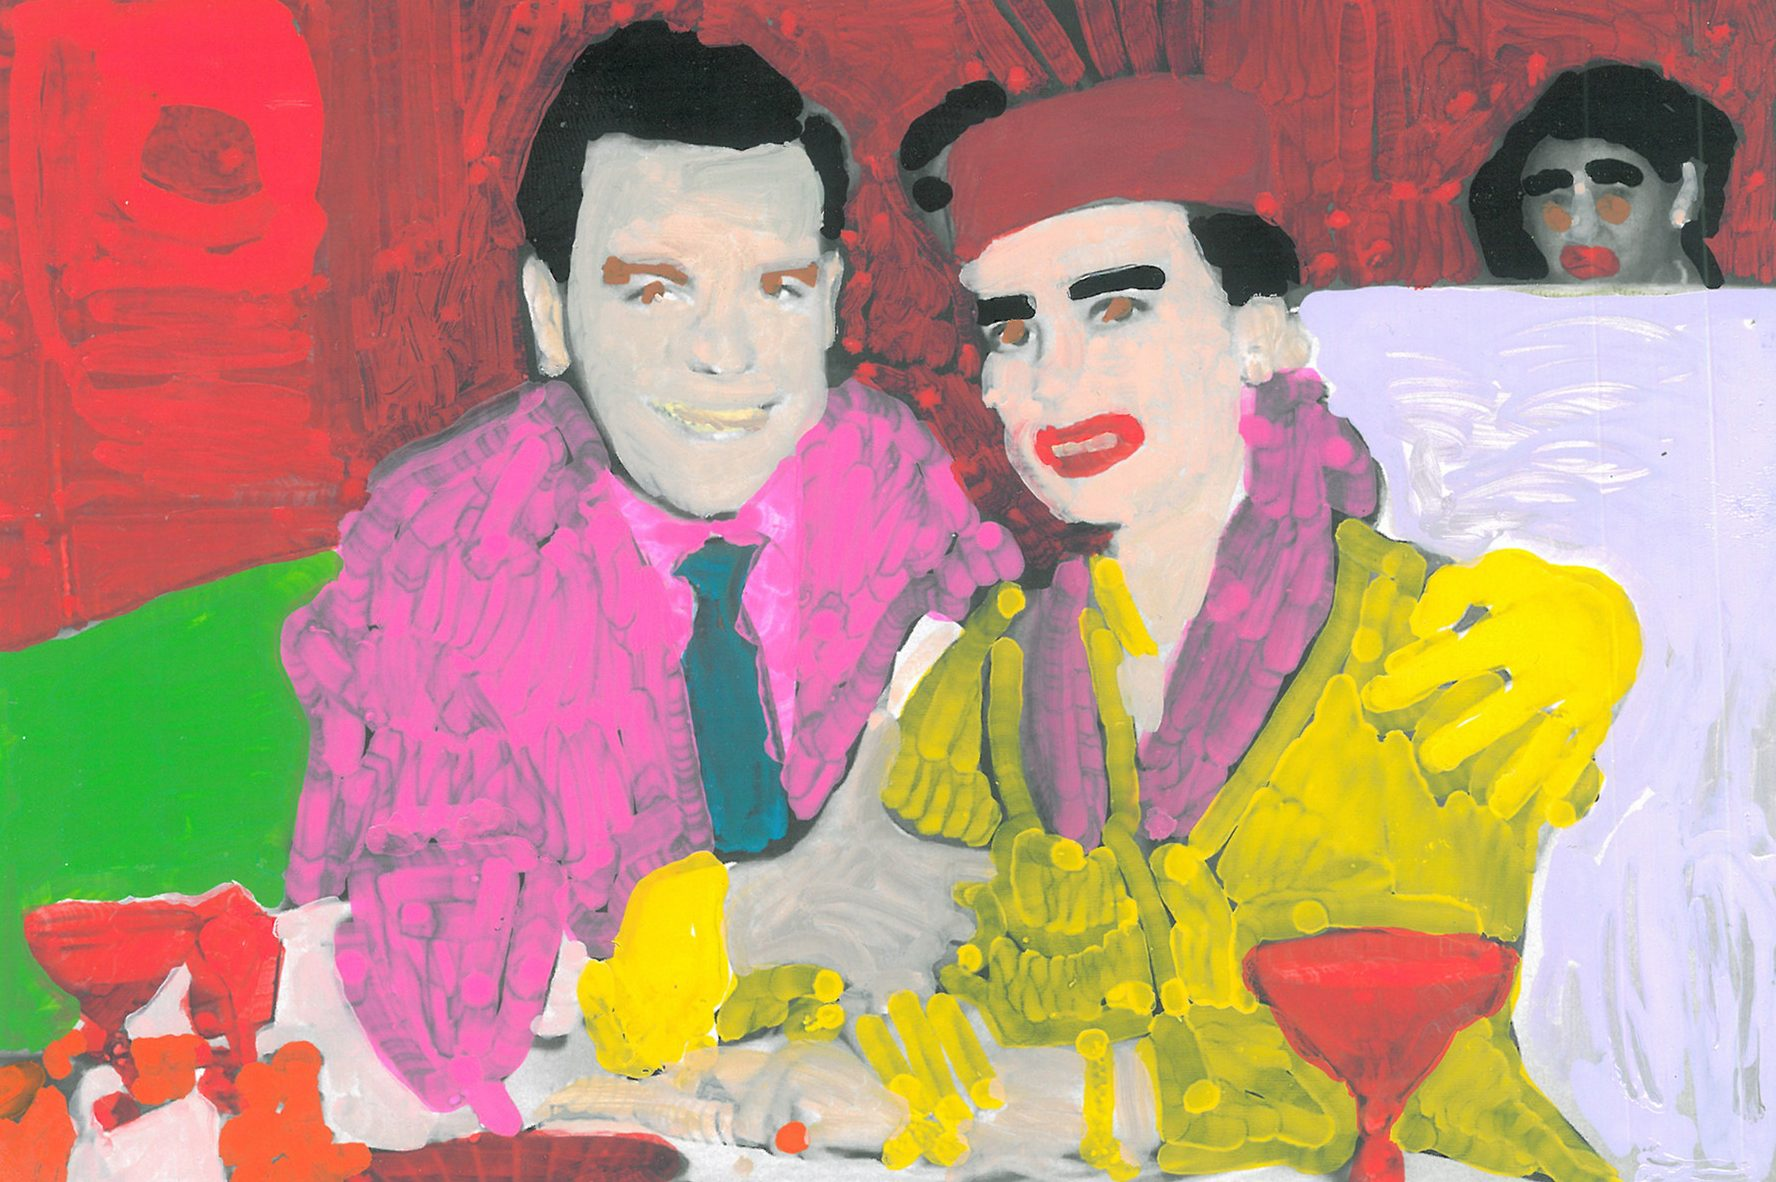 A brightly colorful painting over a photograph of two smiling people sitting at a restaurant. One person wears a pink shirt and a green tie, and the other wears a yellow shirt with a pink collar, and a pink hat.